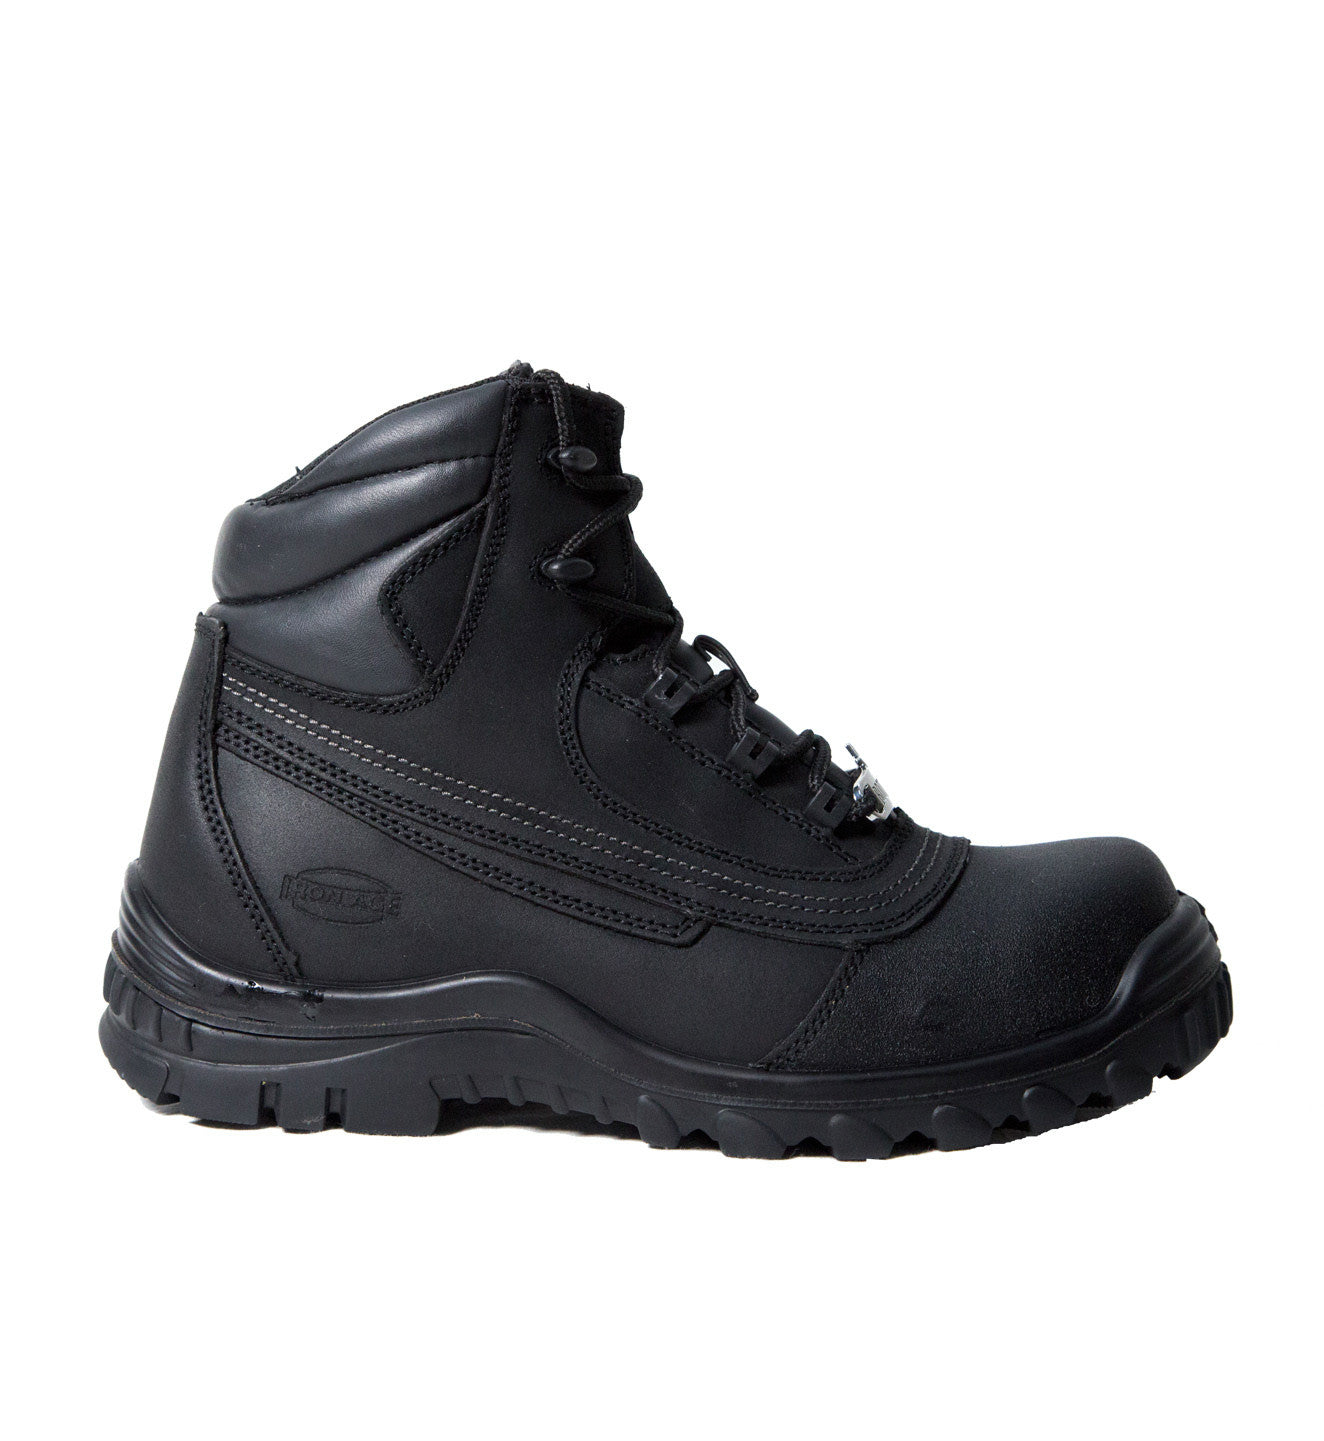 Backstop Work Boots by Iron Age